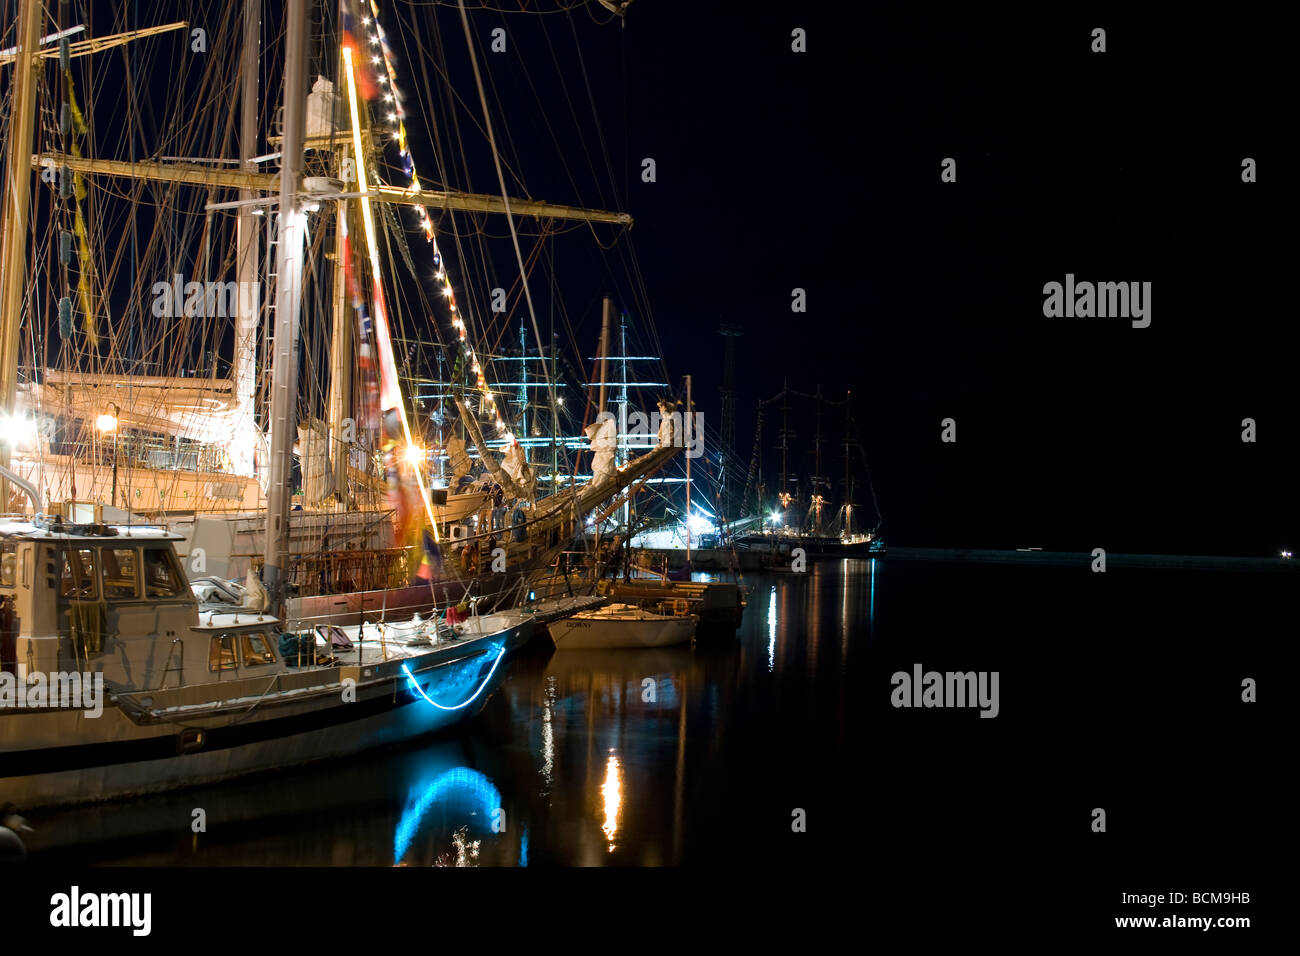 Night shot from the beginning of Tall Ships Races 2009 in Gdynia. - Stock Image